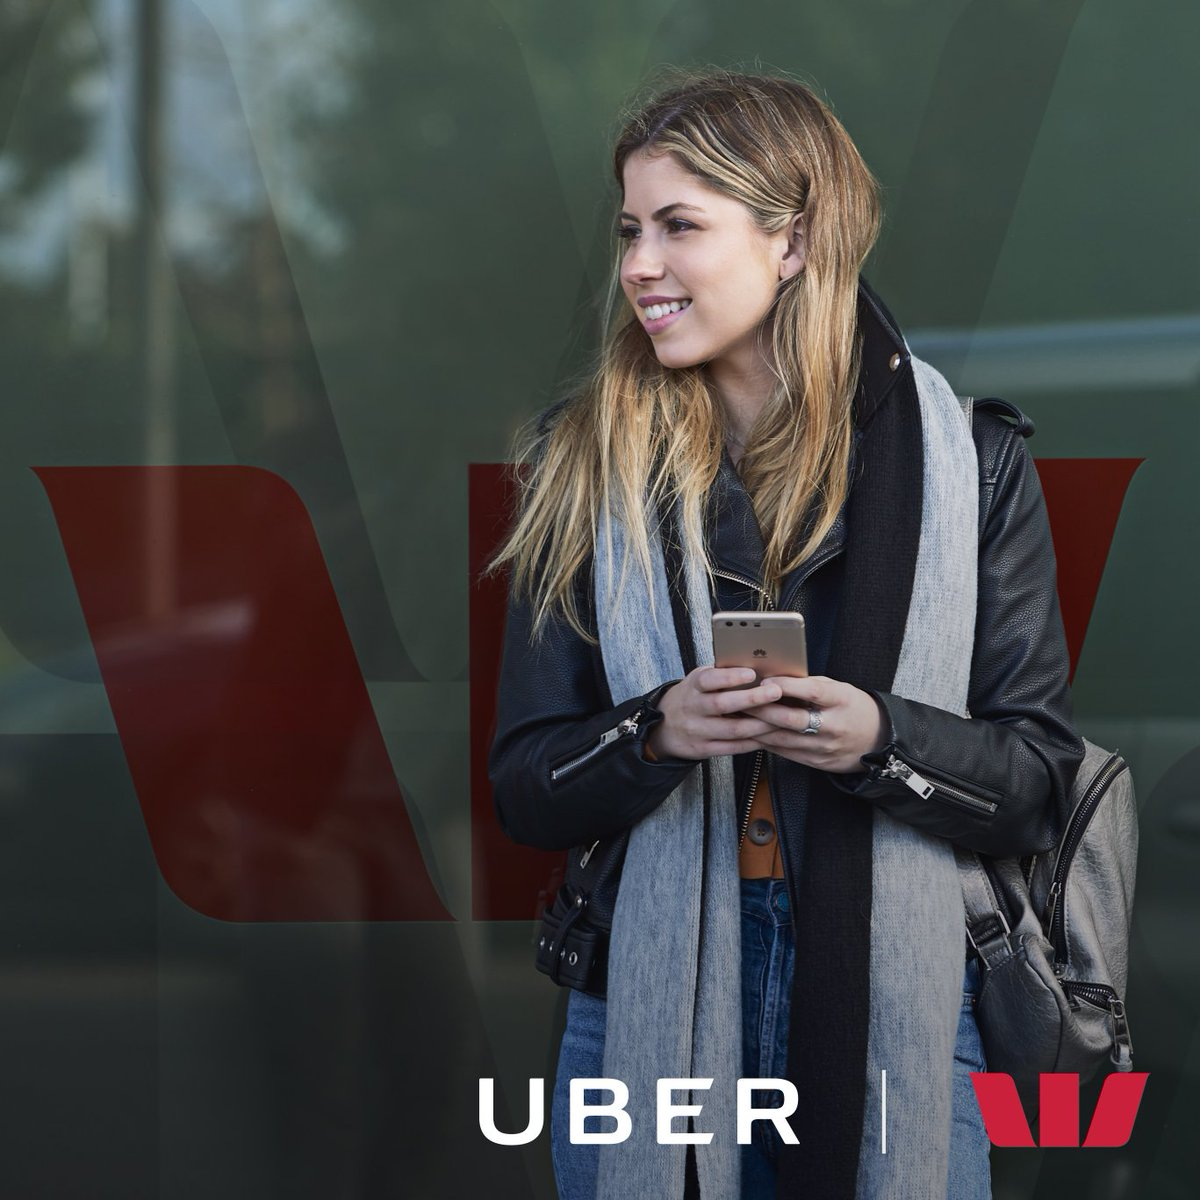 Experience more, for less- Westpac is treating their Mastercard customers to every third ride free, up to $30 off that ride!  Learn more on how you can access this offer - https://t.co/S2HqeHOOow https://t.co/mRxi7JGeYY